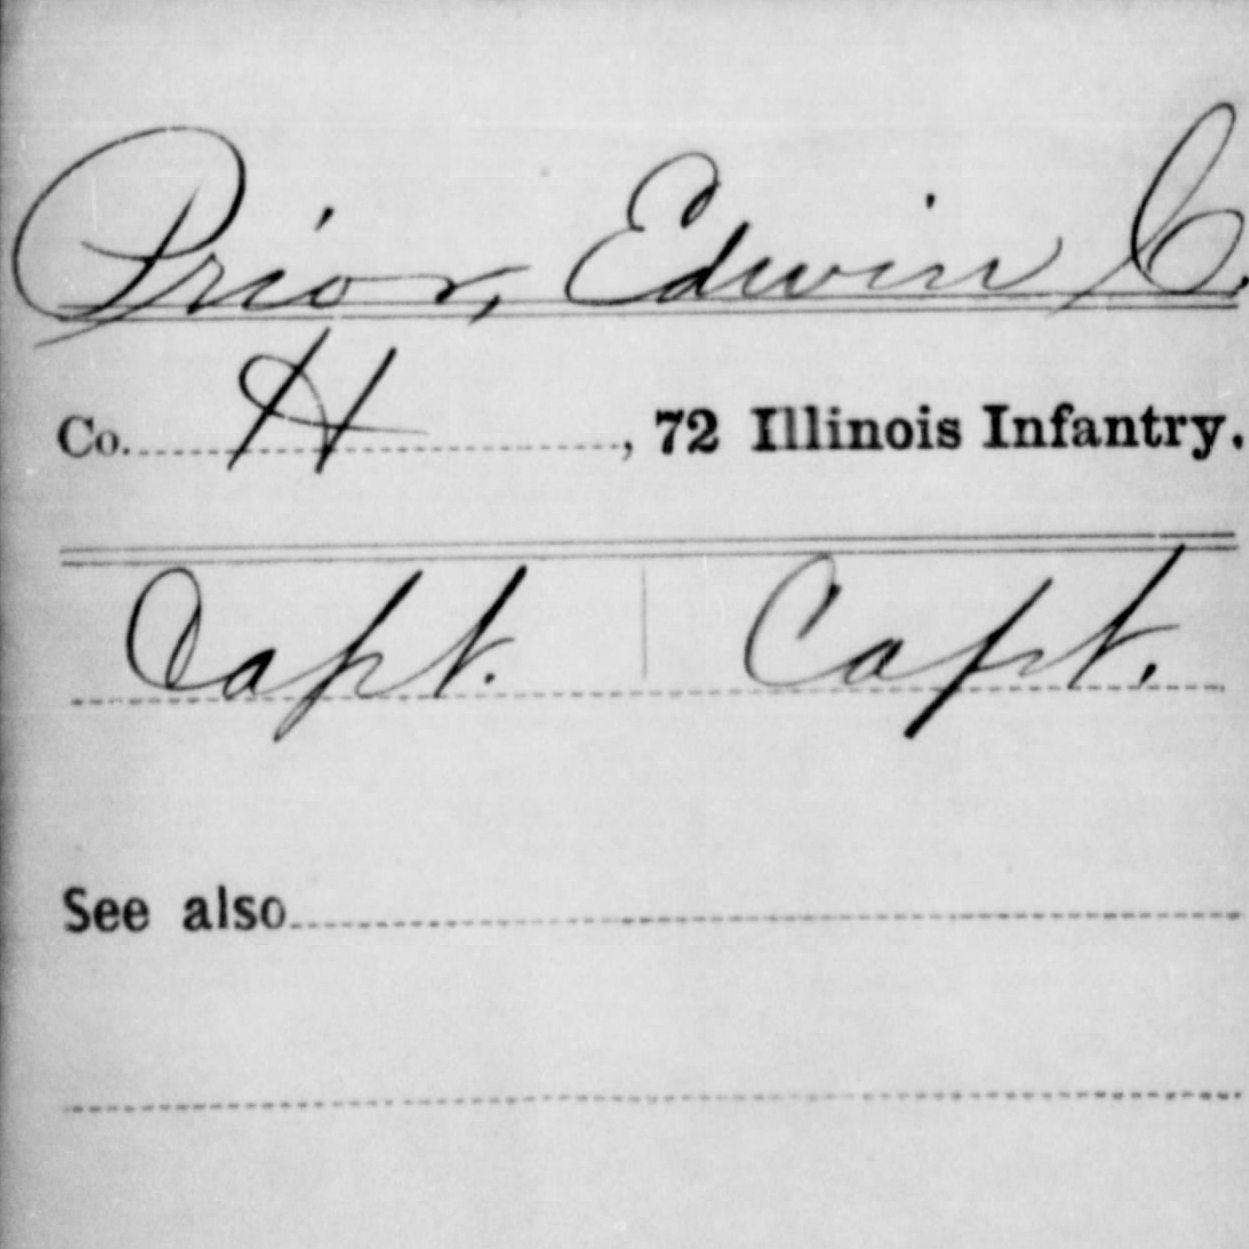 Capt. Edwin Prior, Co. H, 72nd IL Infantry, USA